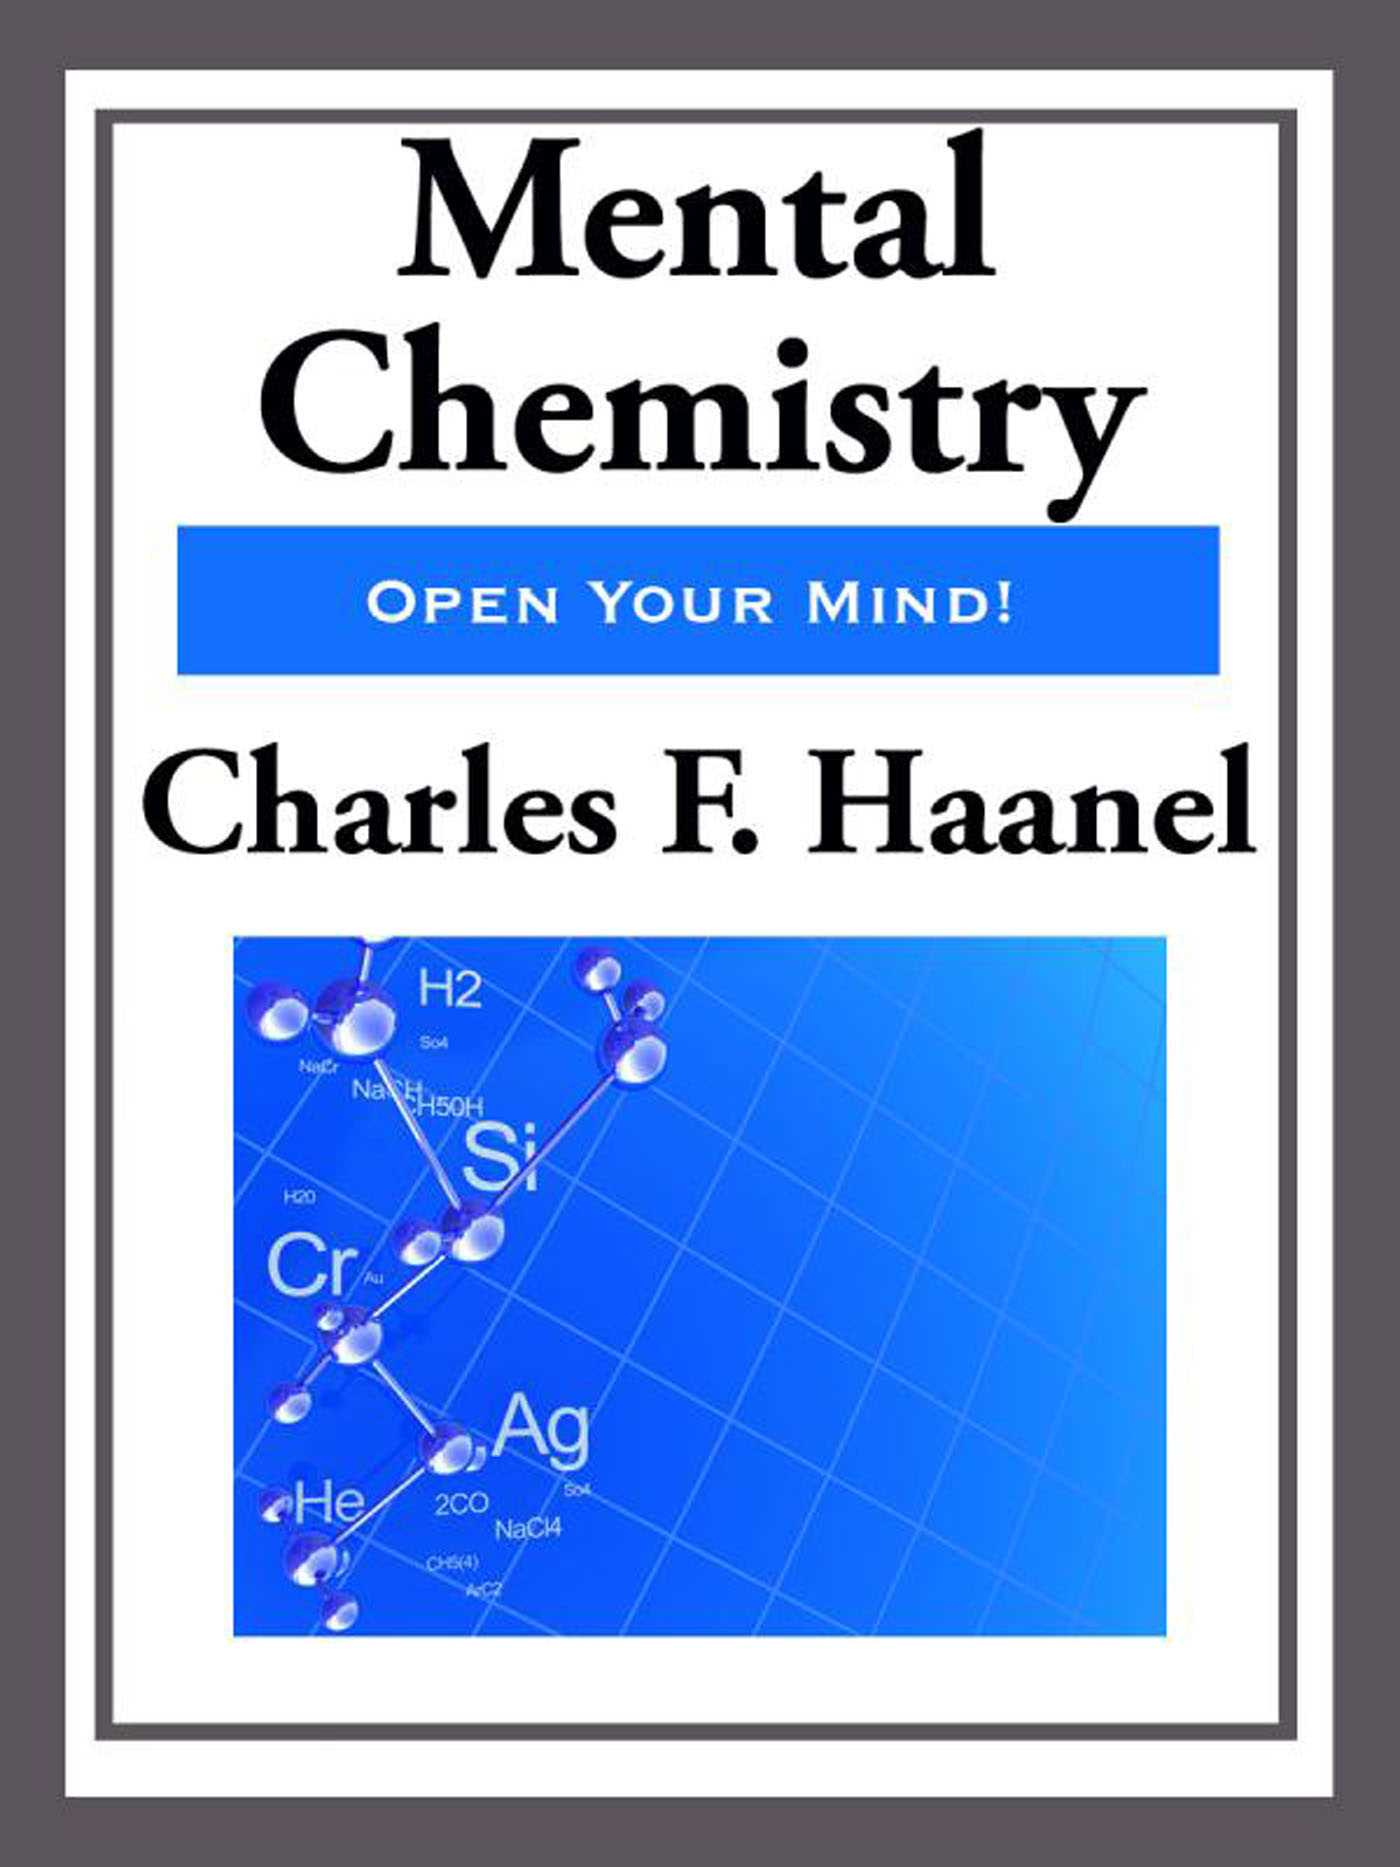 Mental chemistry ebook by charles f haanel official publisher mental chemistry 9781625586315 hr fandeluxe Images